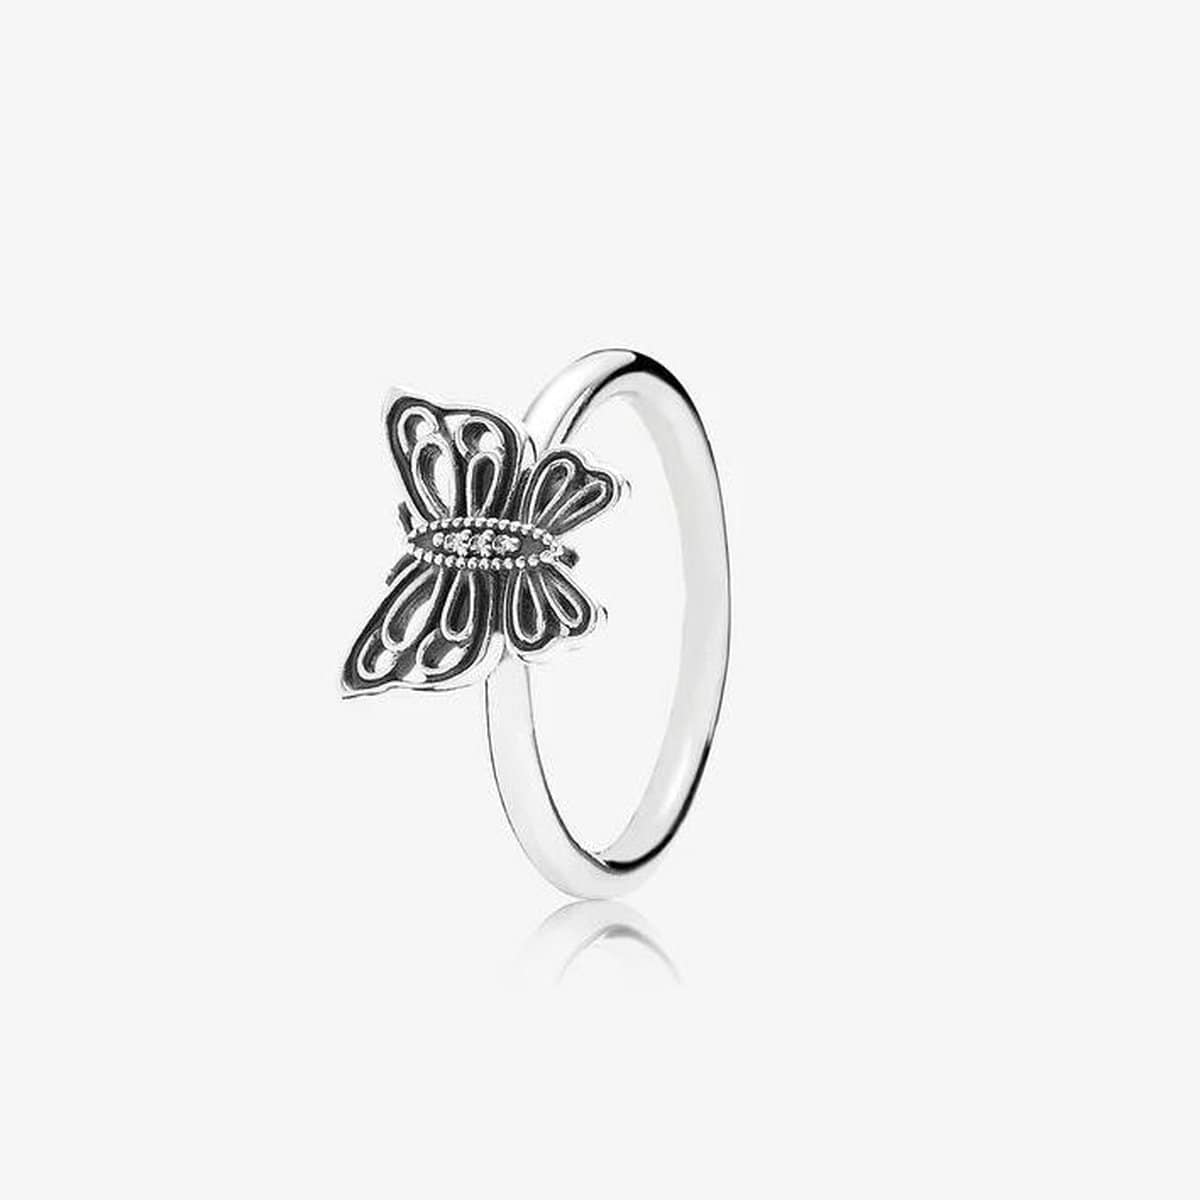 Love Takes Flight Clear Cubic Zirconia Ring - 190901CZ-Pandora-Renee Taylor Gallery